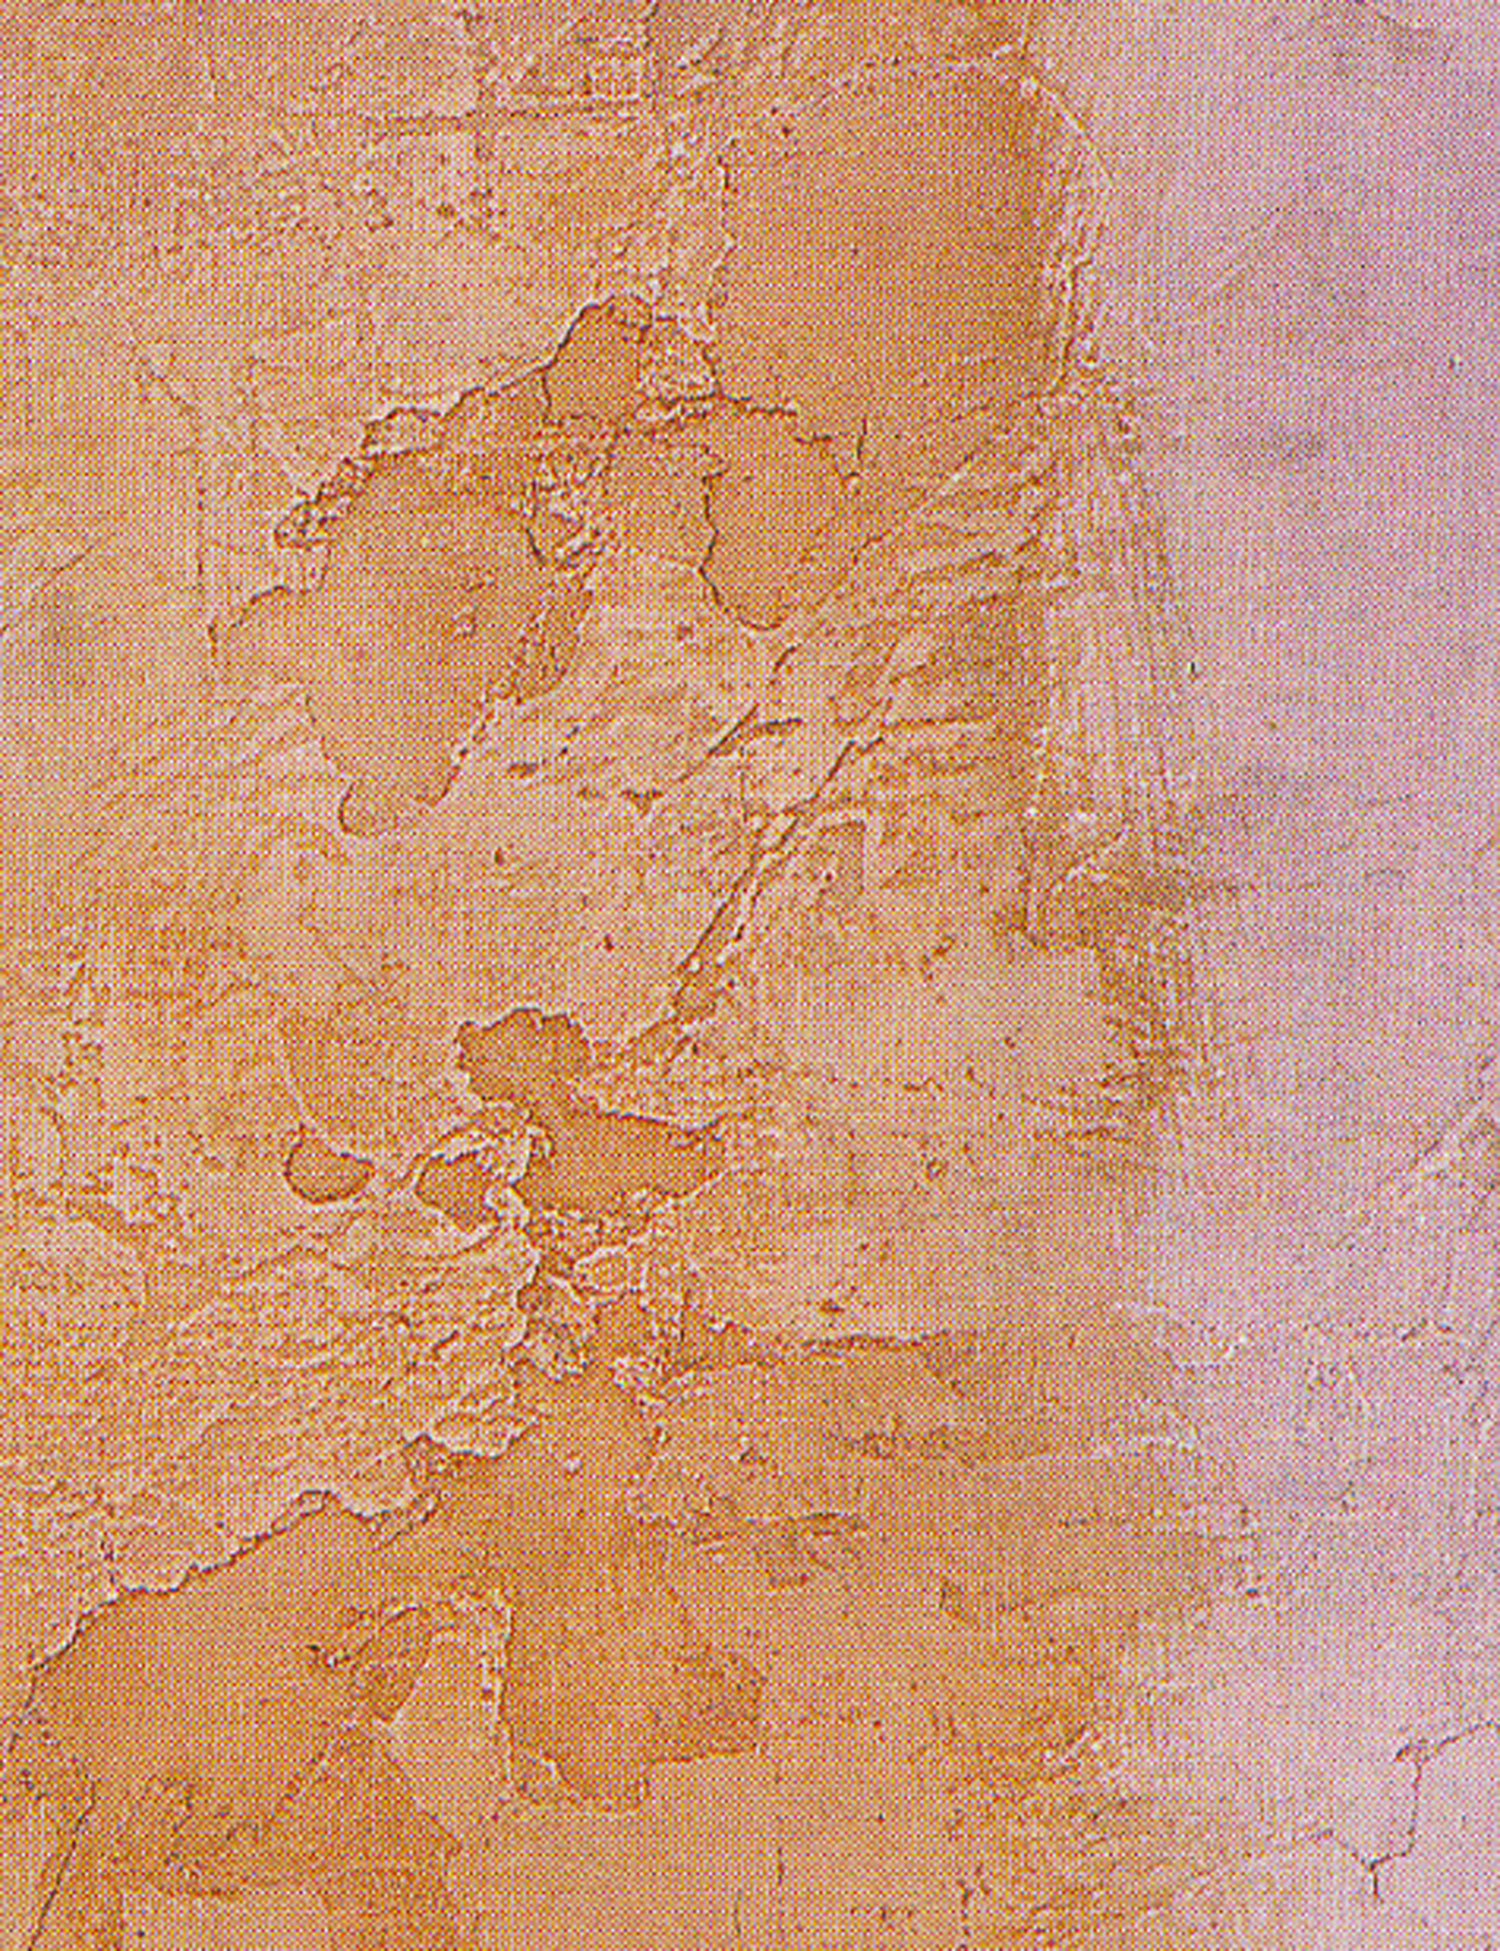 Rustic Surface with Color Wash Plaster